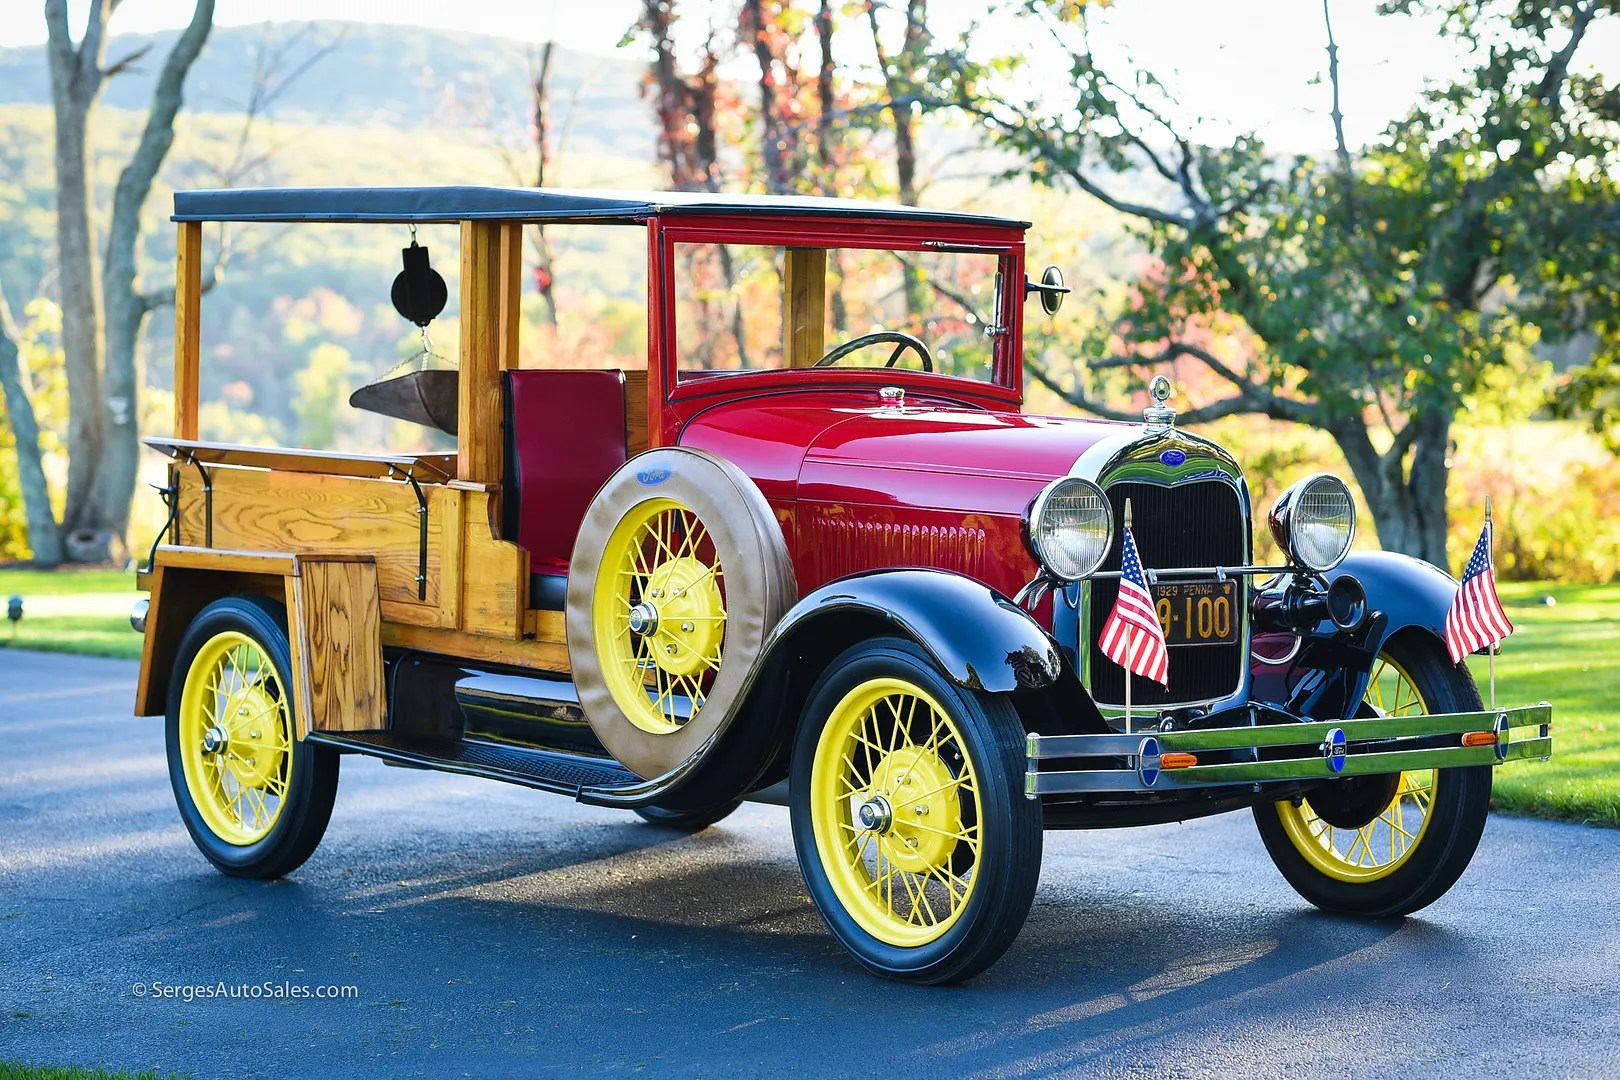 photo 1929-Ford-Model-A-Huckster-for-sale-serges-auto-sales-northeast-pennsylvania-scranton-muscle-cars-corvettes--7_zpsxtfrr7fz.jpg